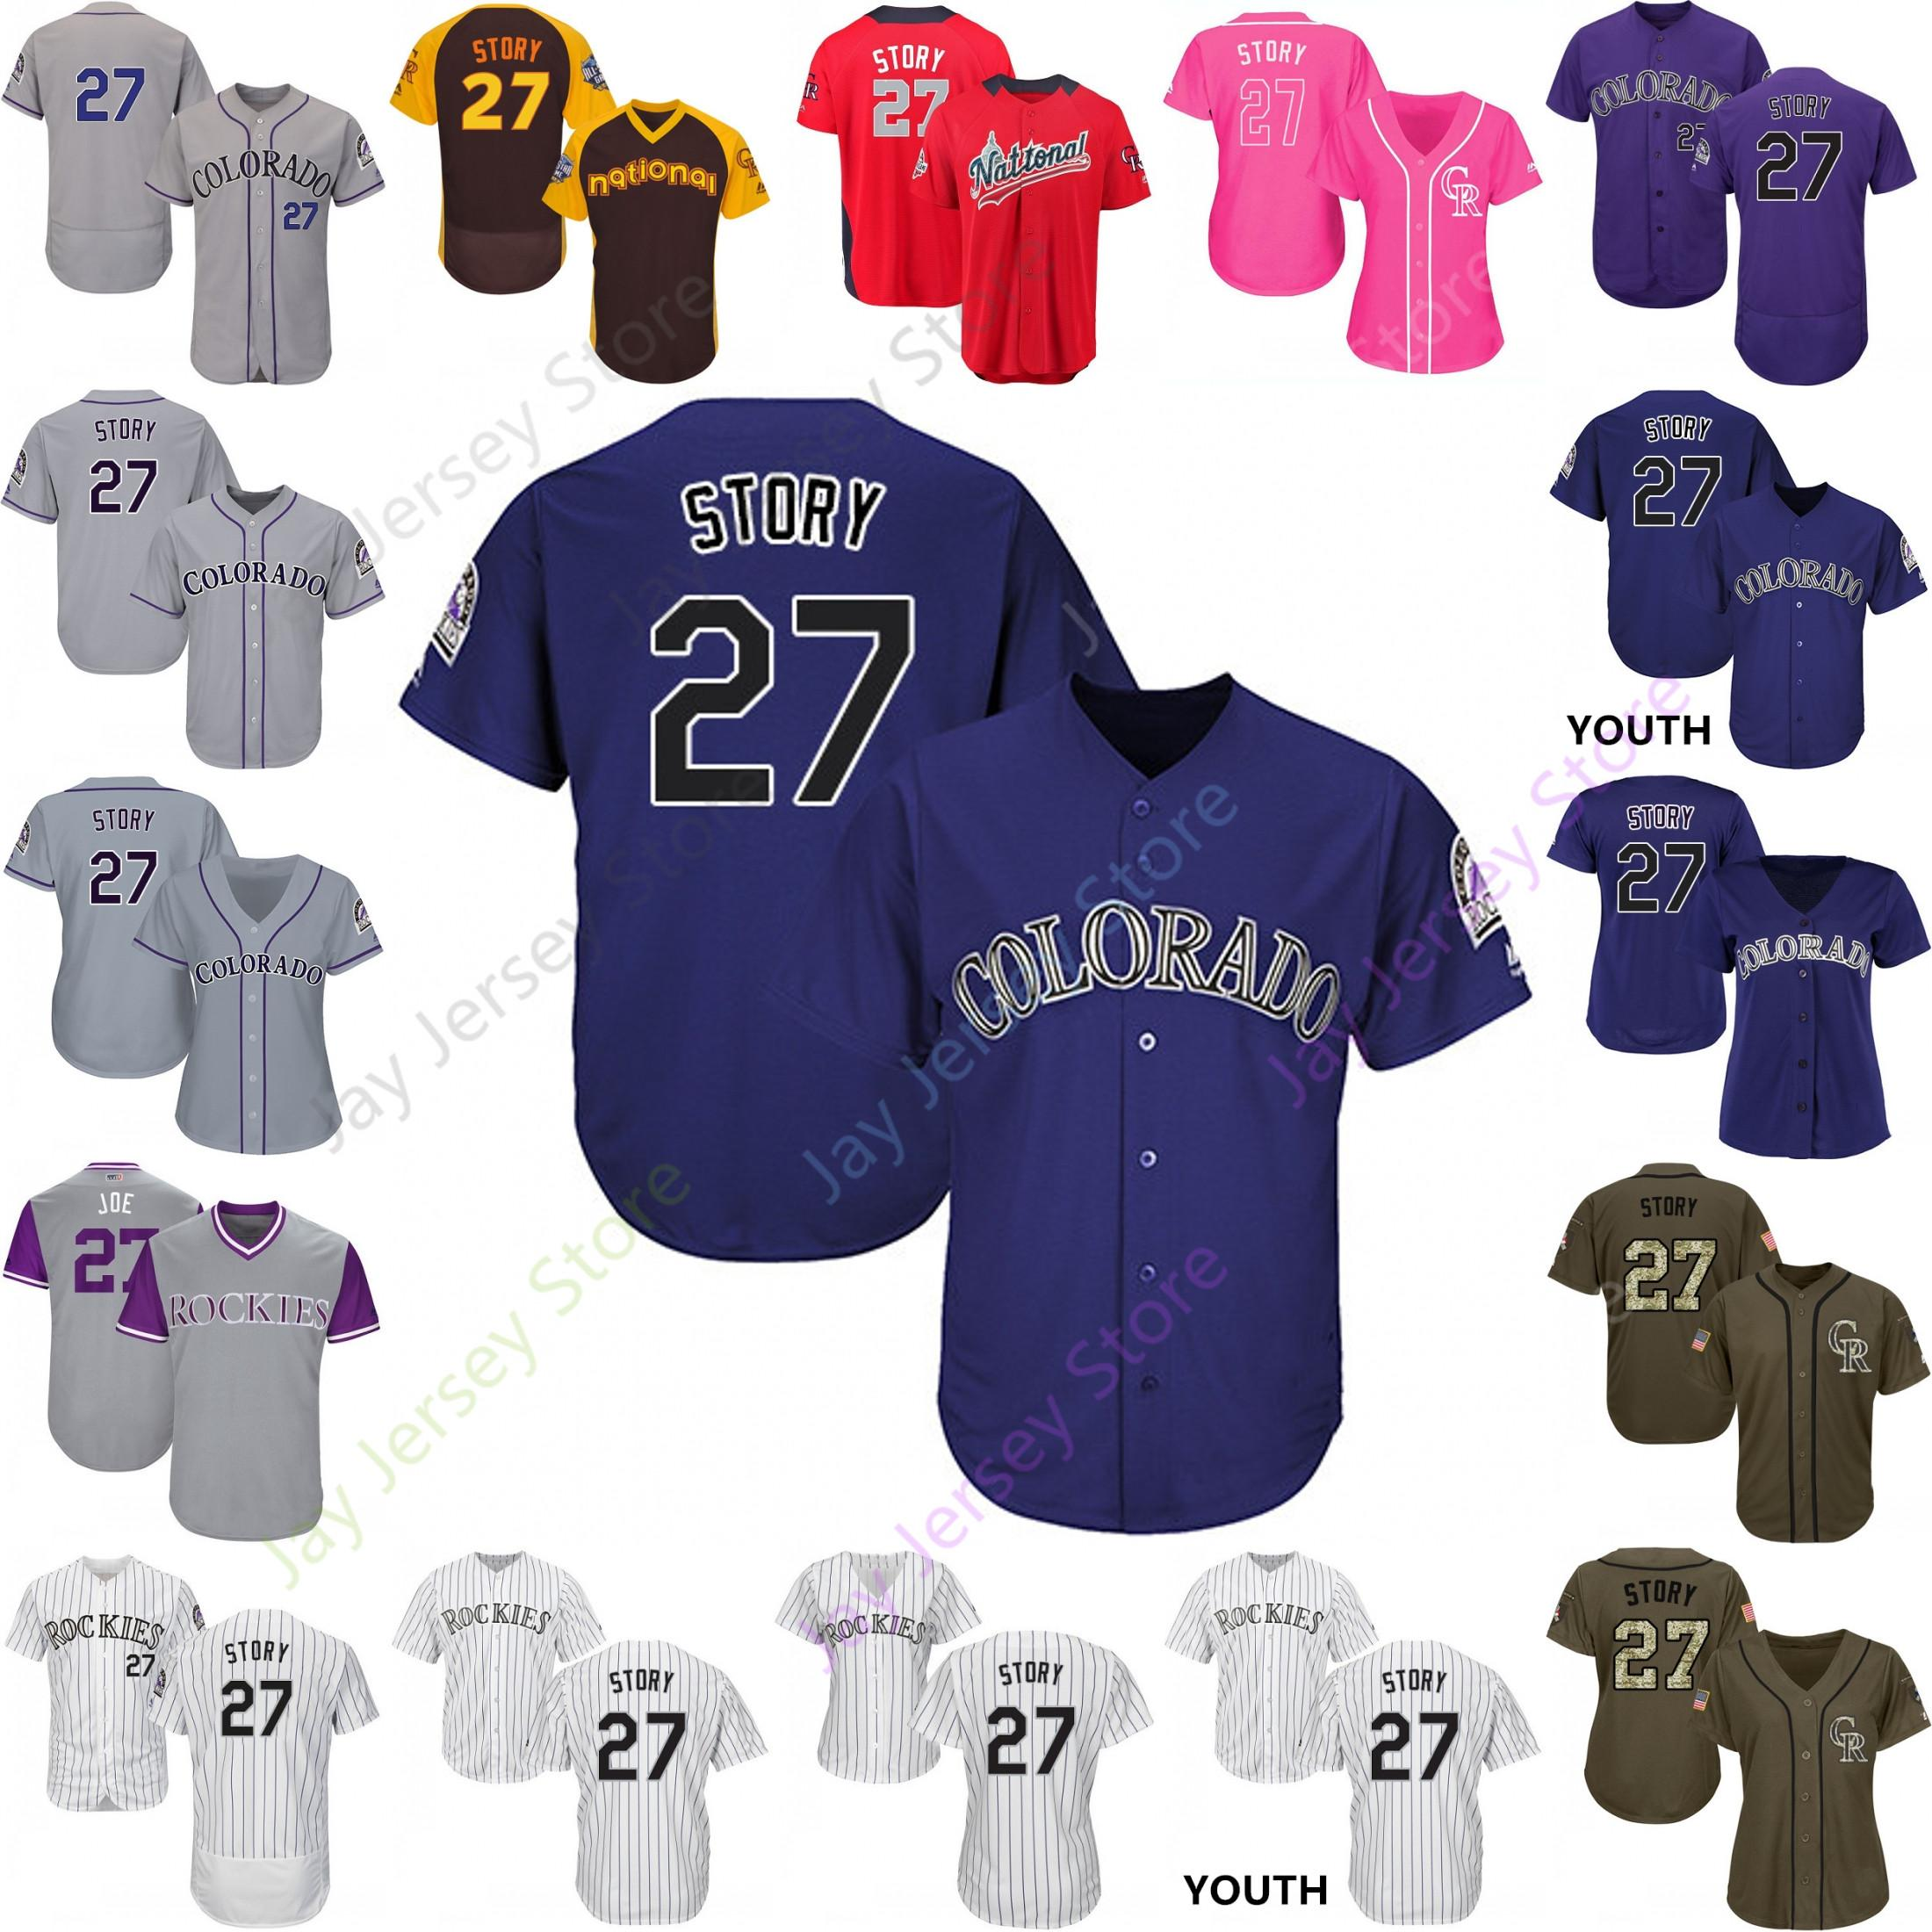 separation shoes defef 5bc46 Custom Colorado 27 Trevor Story Jersey Rockies Jerseys Cooperstown Cool  Base Flexbase White Black Red Grey Home Away Men Women Youth Cheap